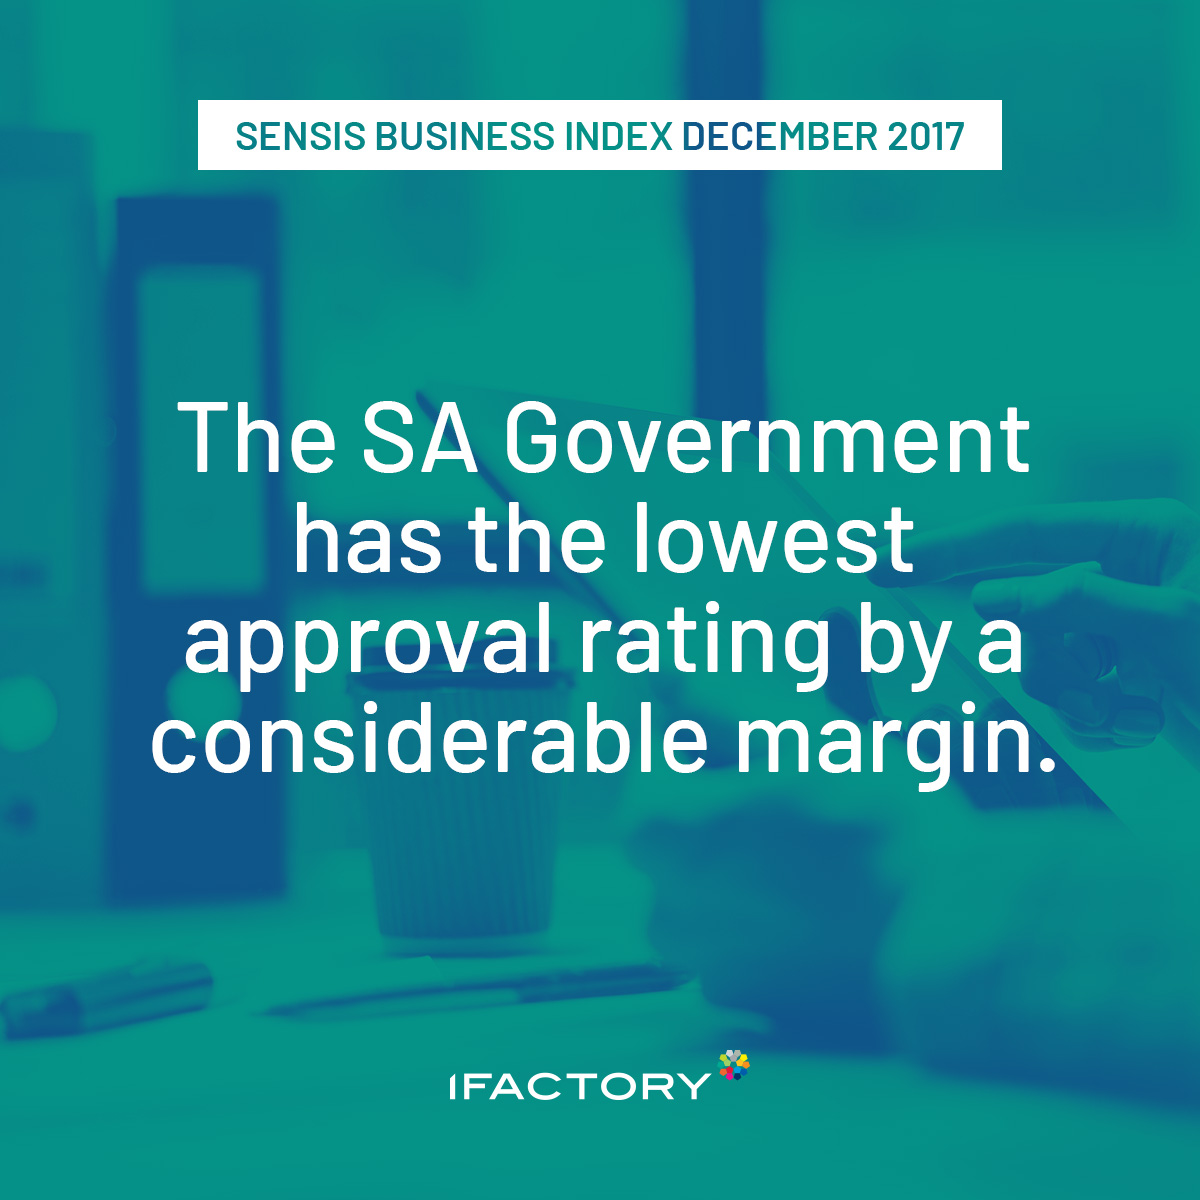 The-SA-Government-has-the-lowest-approval-rating-by-a-considerable-margin